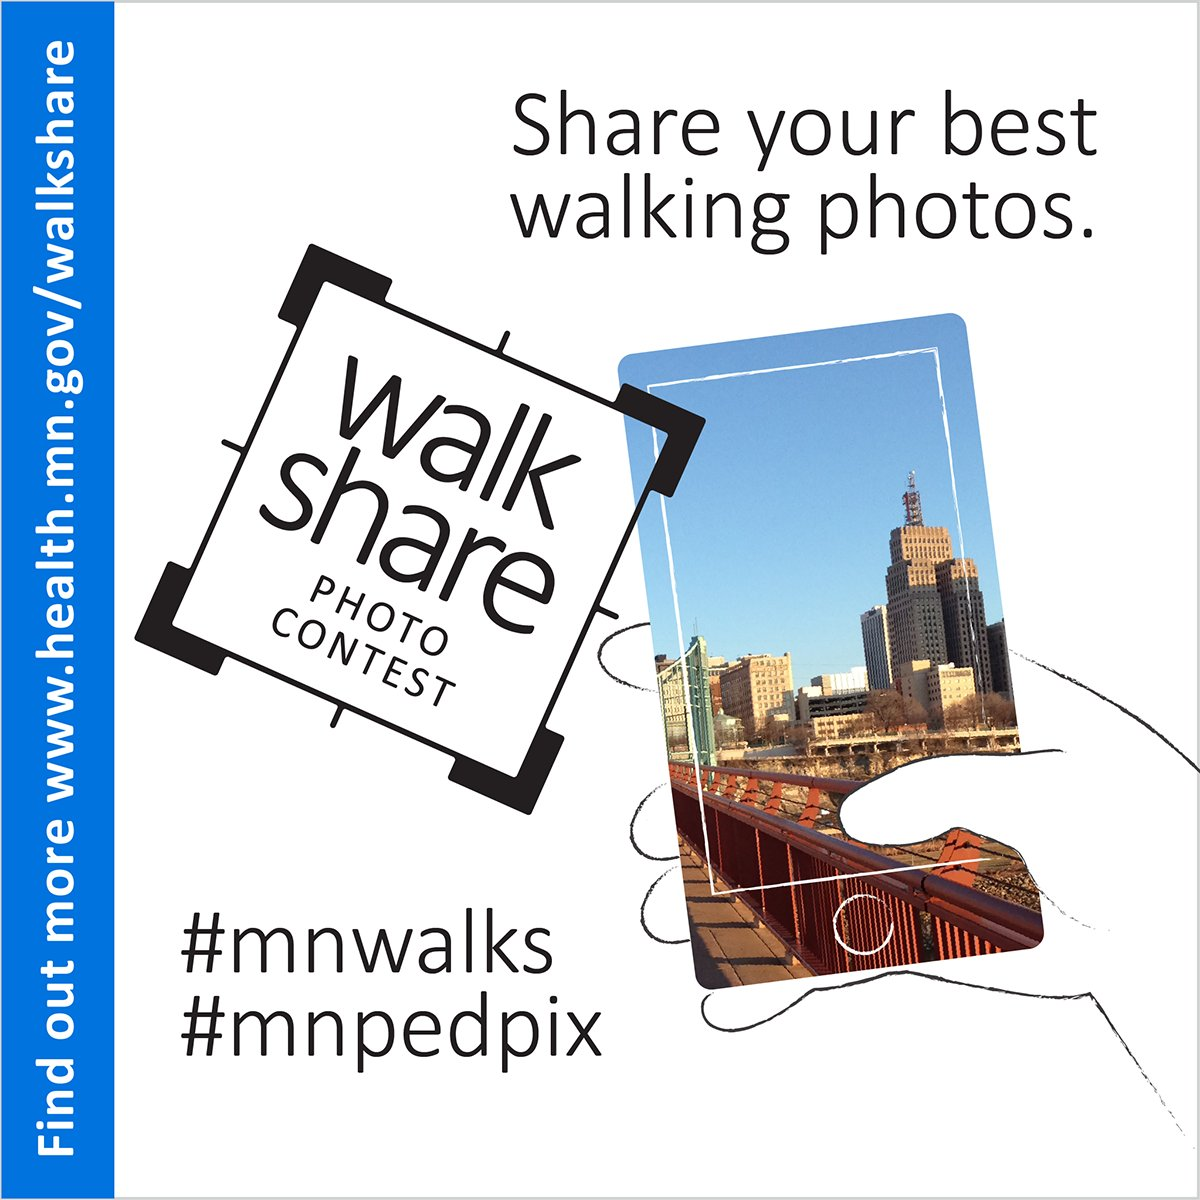 Taking a walk? Tweet your walking pics using #mnwalks #mnpedpix by June 3 and you could win! https://t.co/gAvDdt7XQZ https://t.co/rKOmbCFOoR